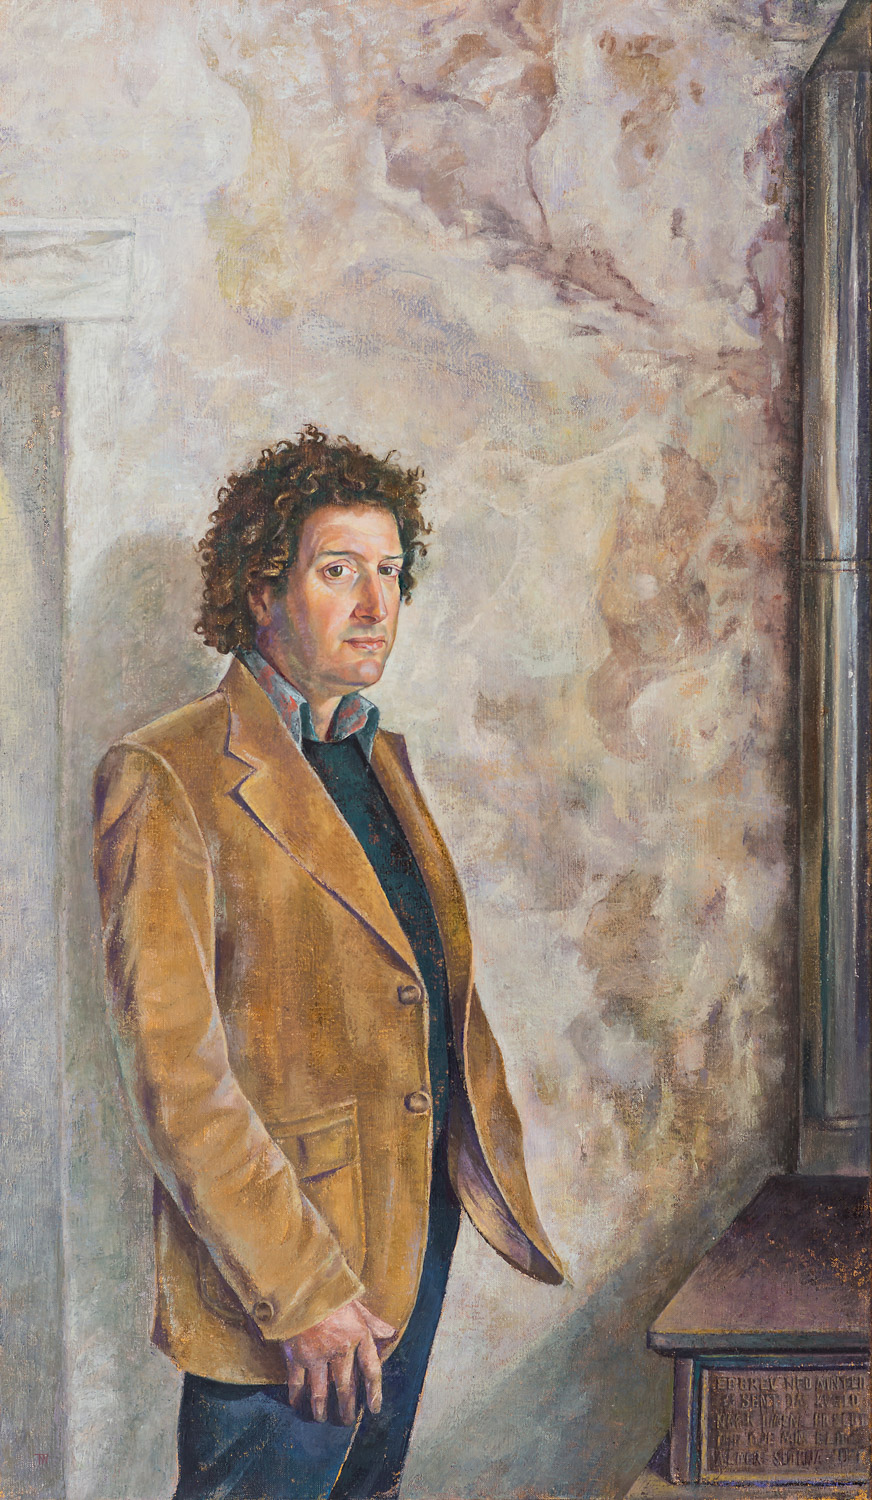 "'Guy Bamford' 135x85cm (53""x33"") oil on linen. Private collection."